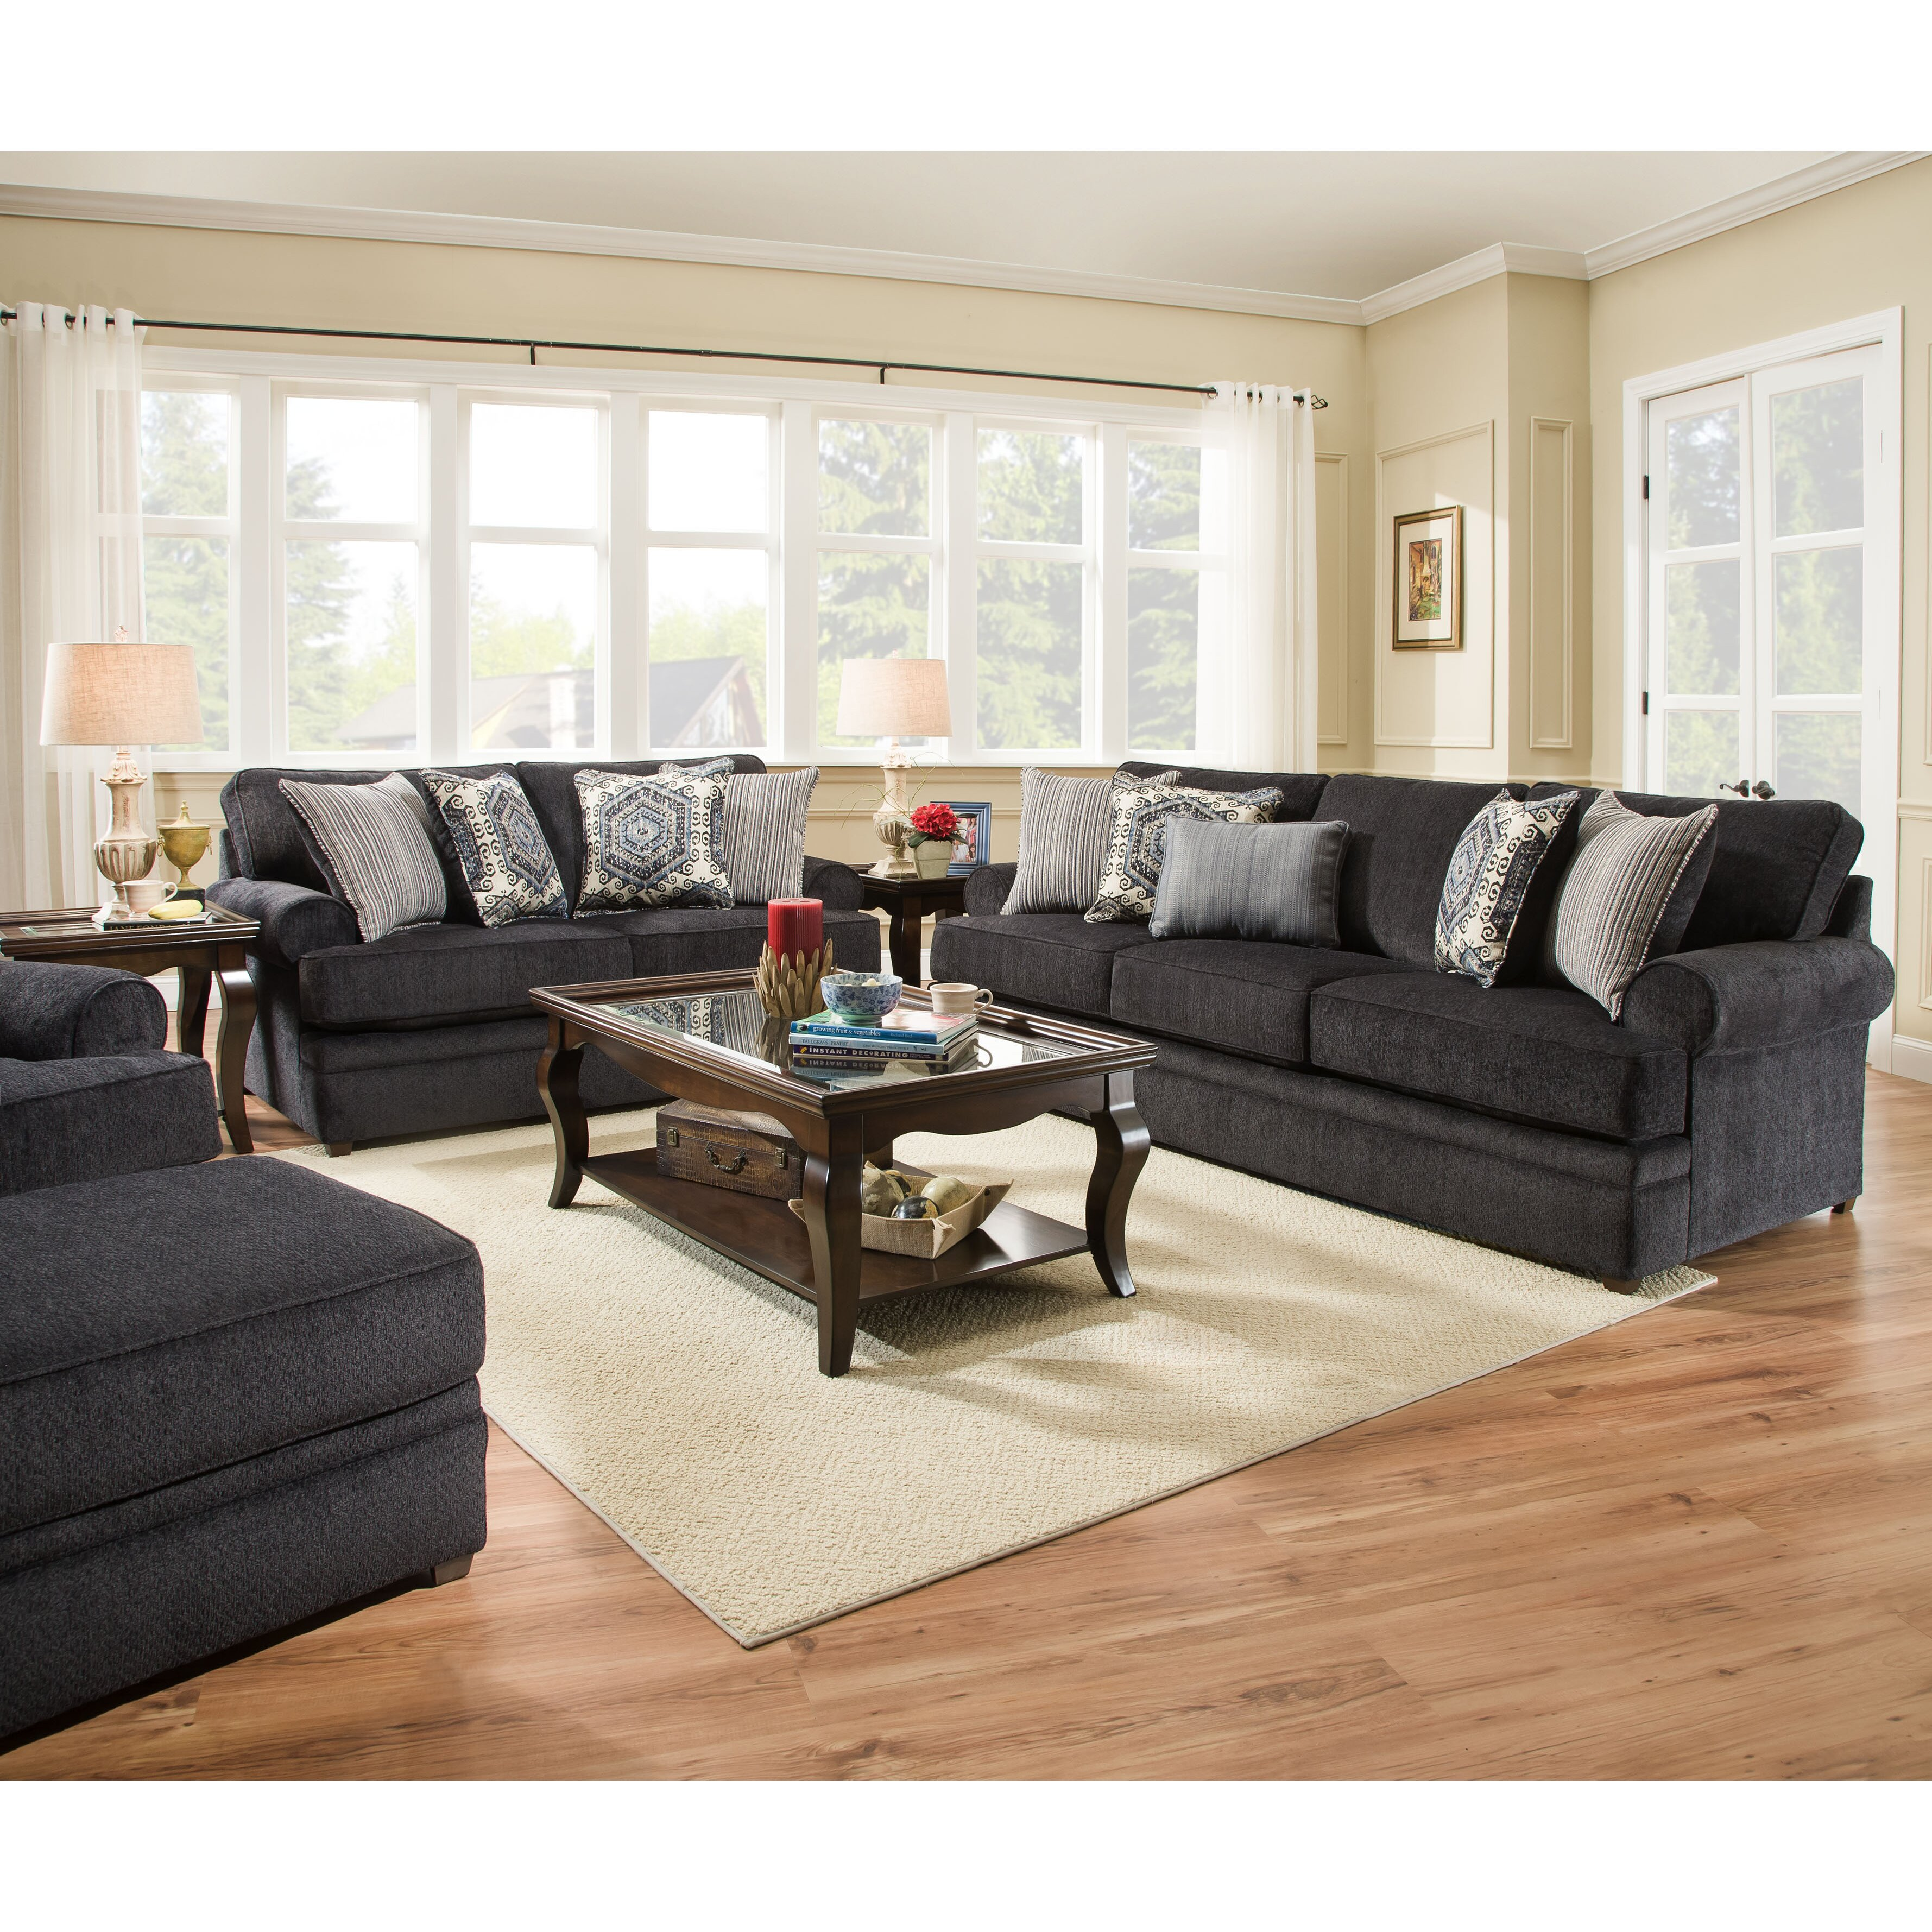 Darby Home Co Dorothy Living Room Collection By Simmons Upholstery Revi